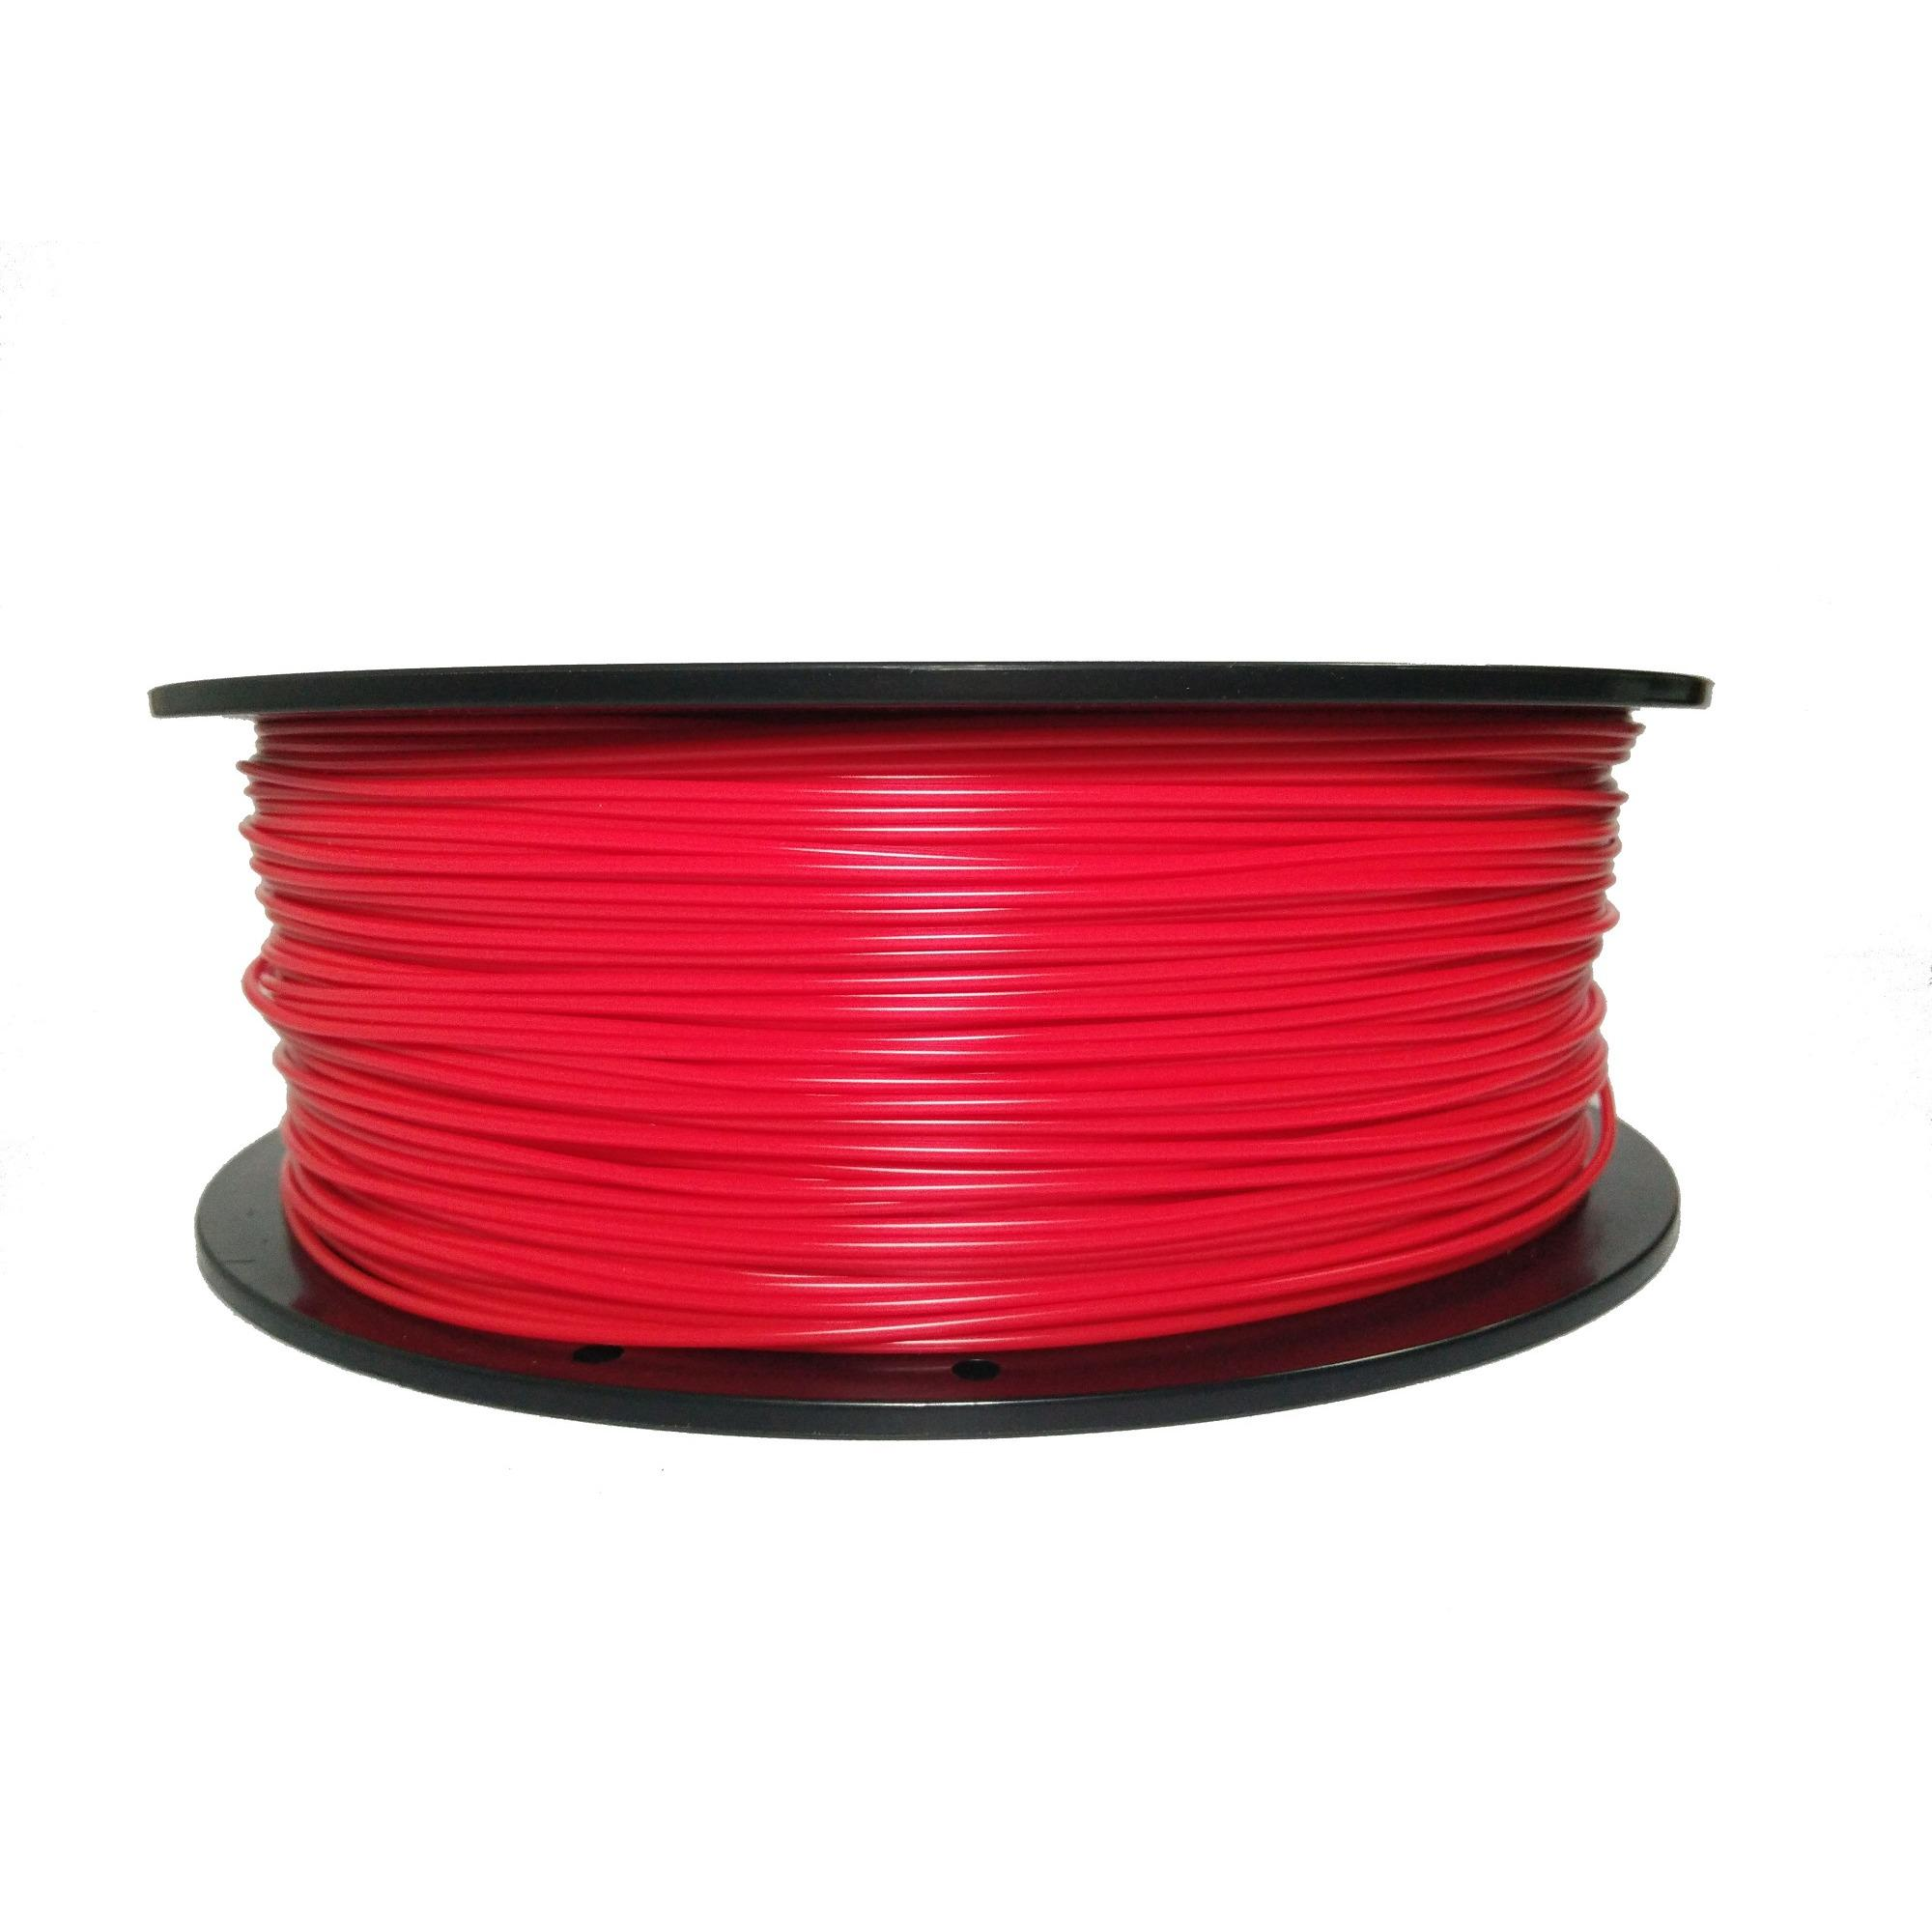 Sale Red Petg Filament For 3D Printer 1 75Mm 1Kg Oem